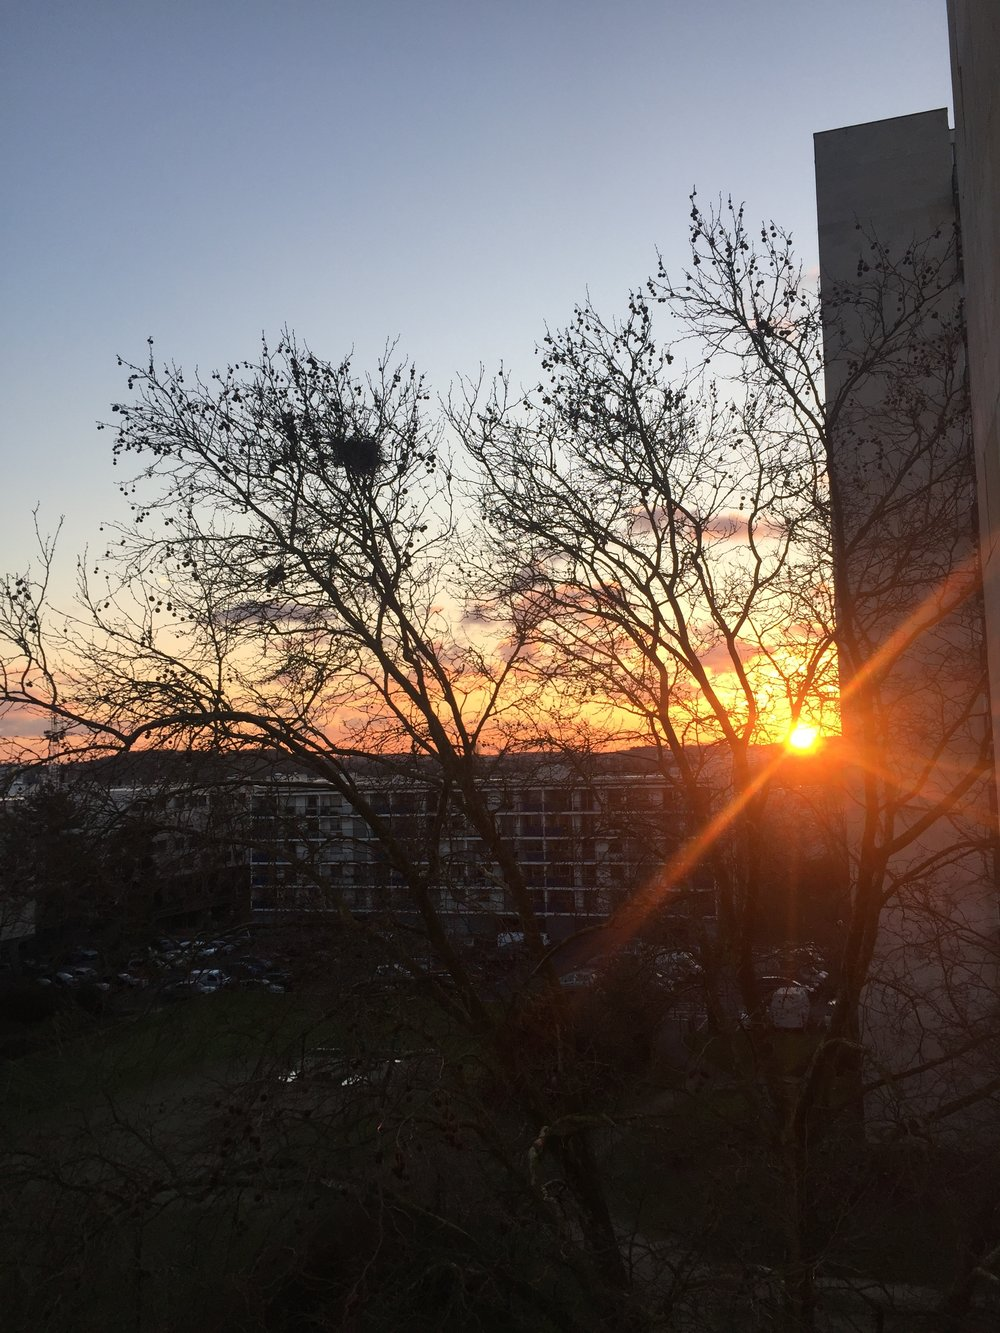 Winter Sunset from our apartment in Massy, France